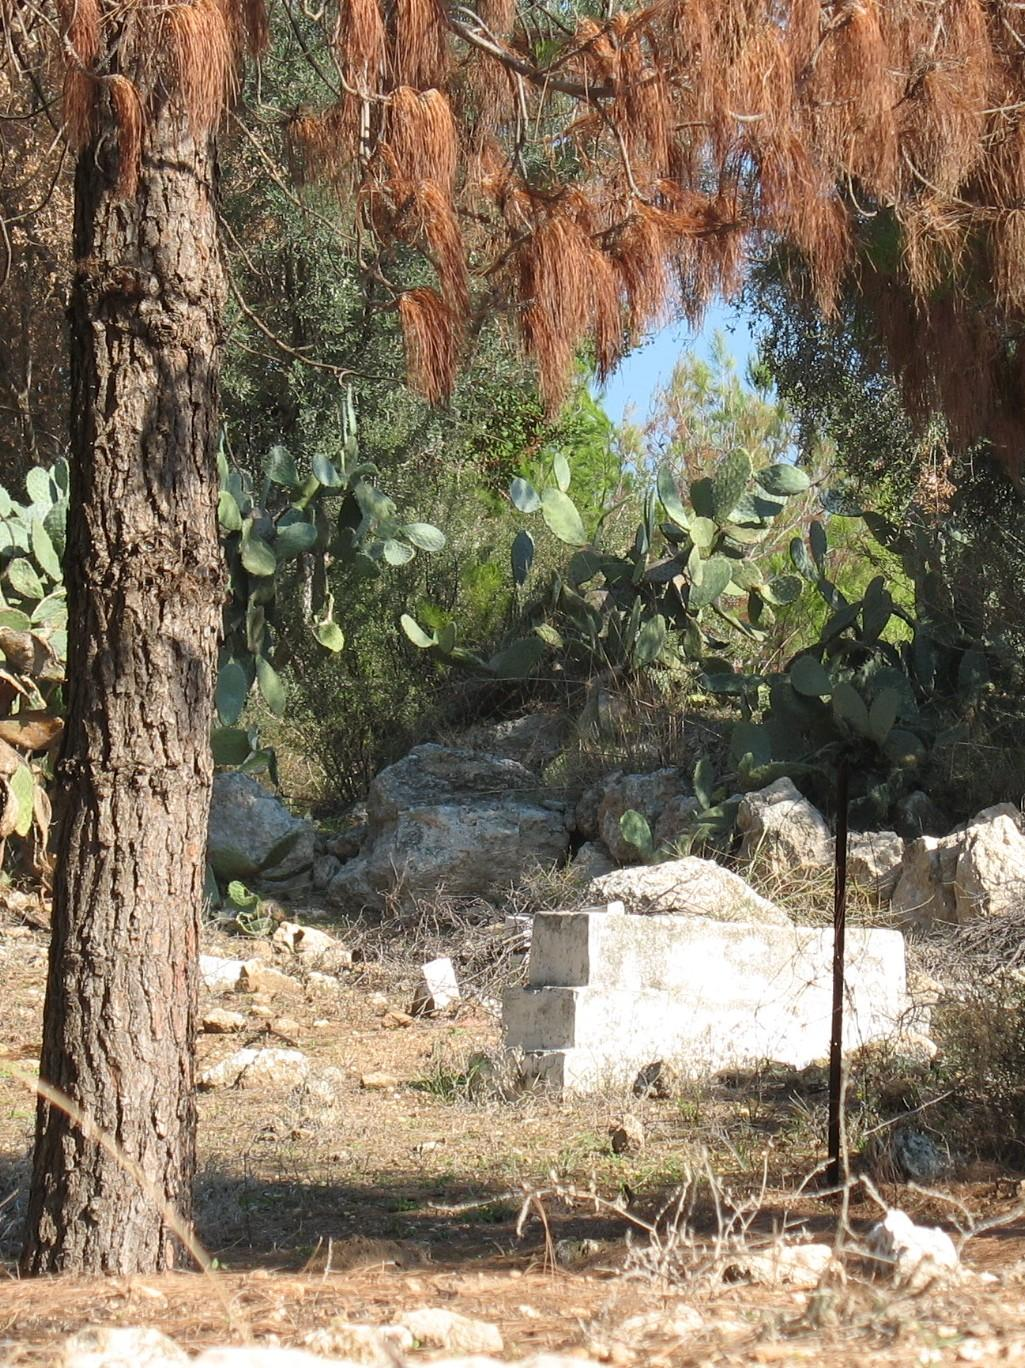 al-Ghabisiyya - الغابسية : The village's cemetery